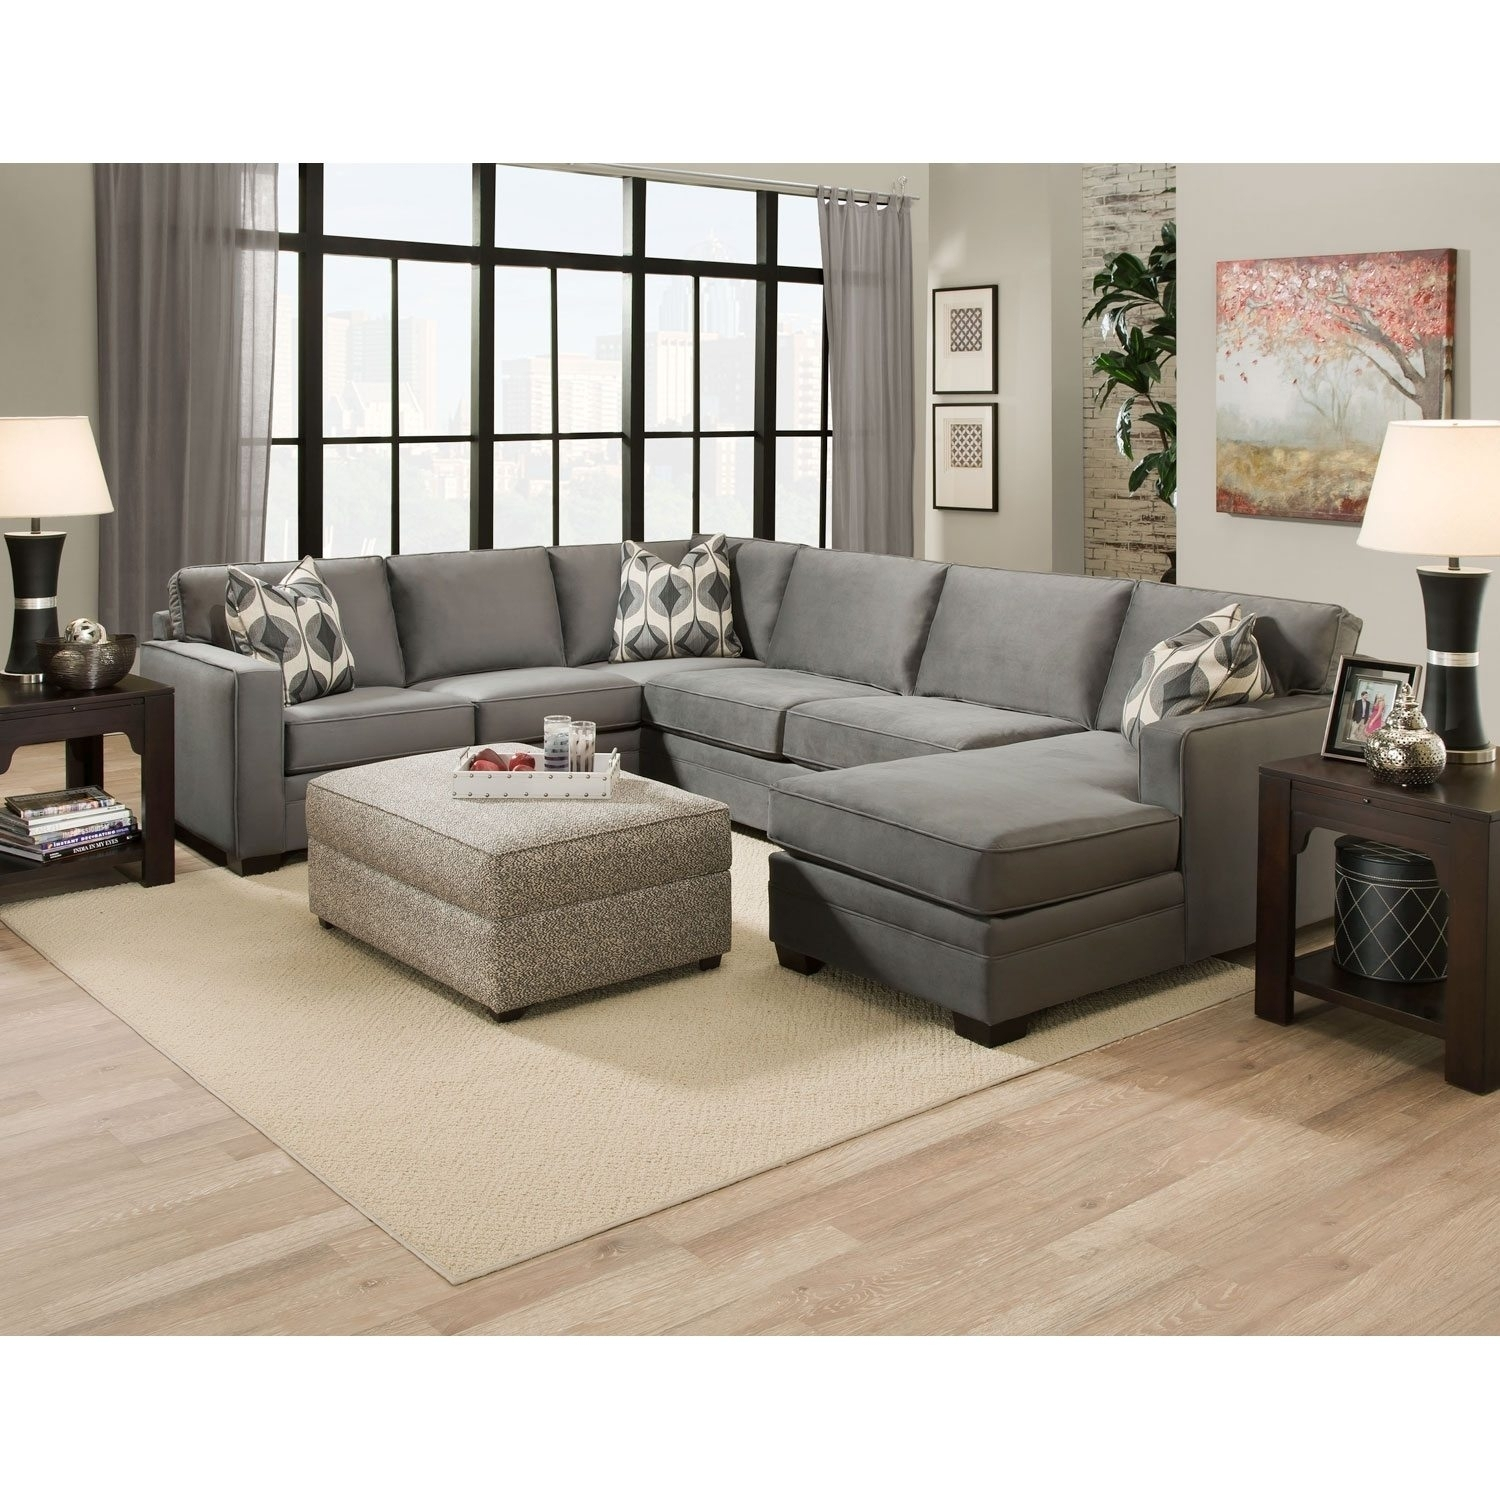 Lane Sectionals Sofas Sam's Club • Sectional Sofa Intended For Sams Club Sectional Sofas (View 7 of 10)